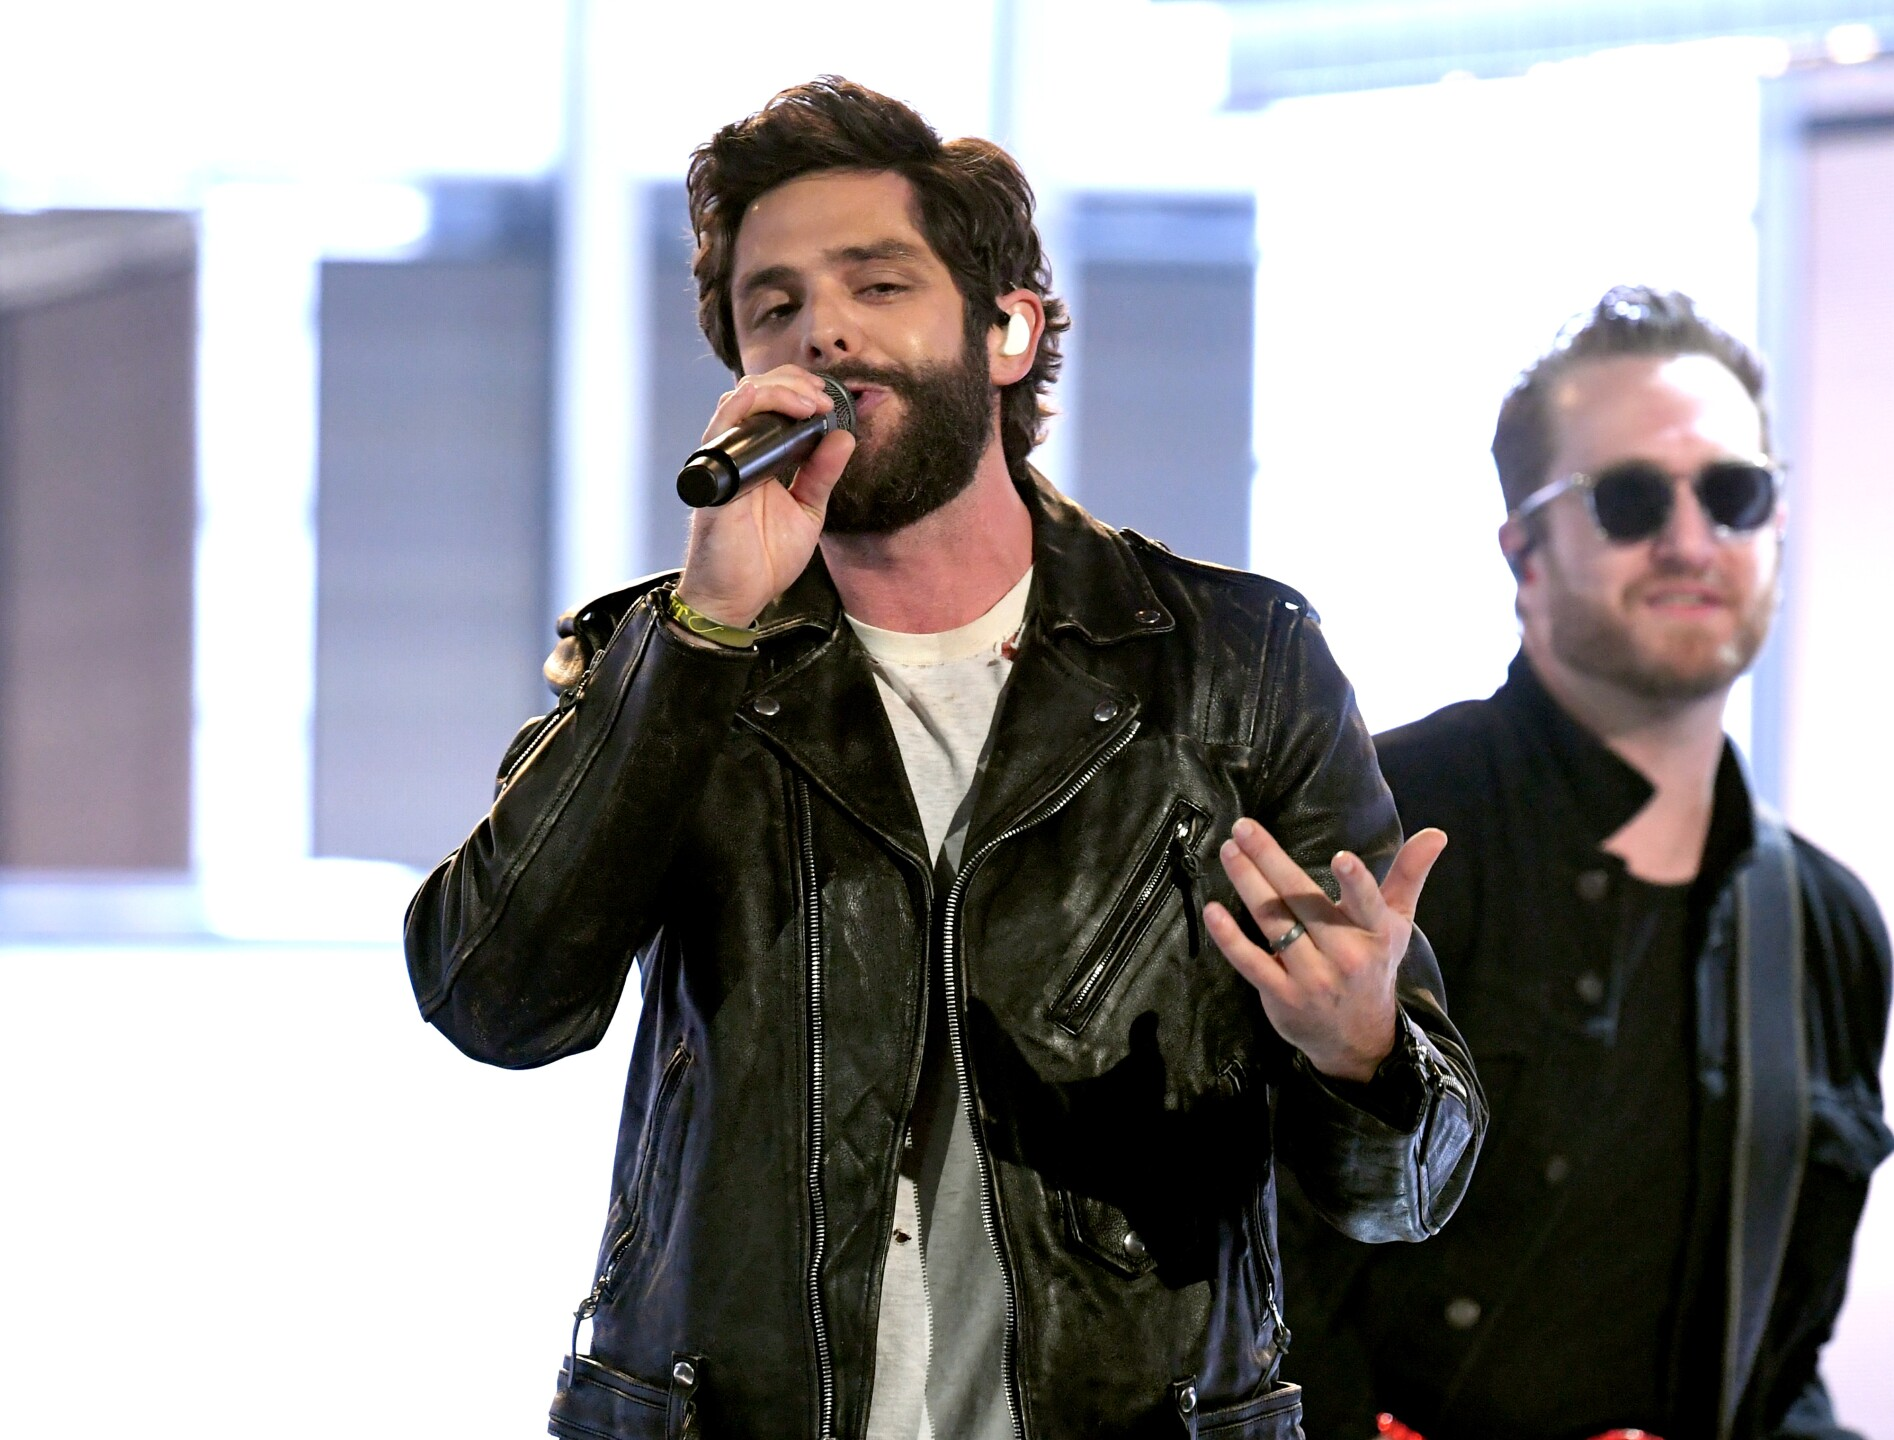 Thomas Rhett to perform June 26 at Summerfest